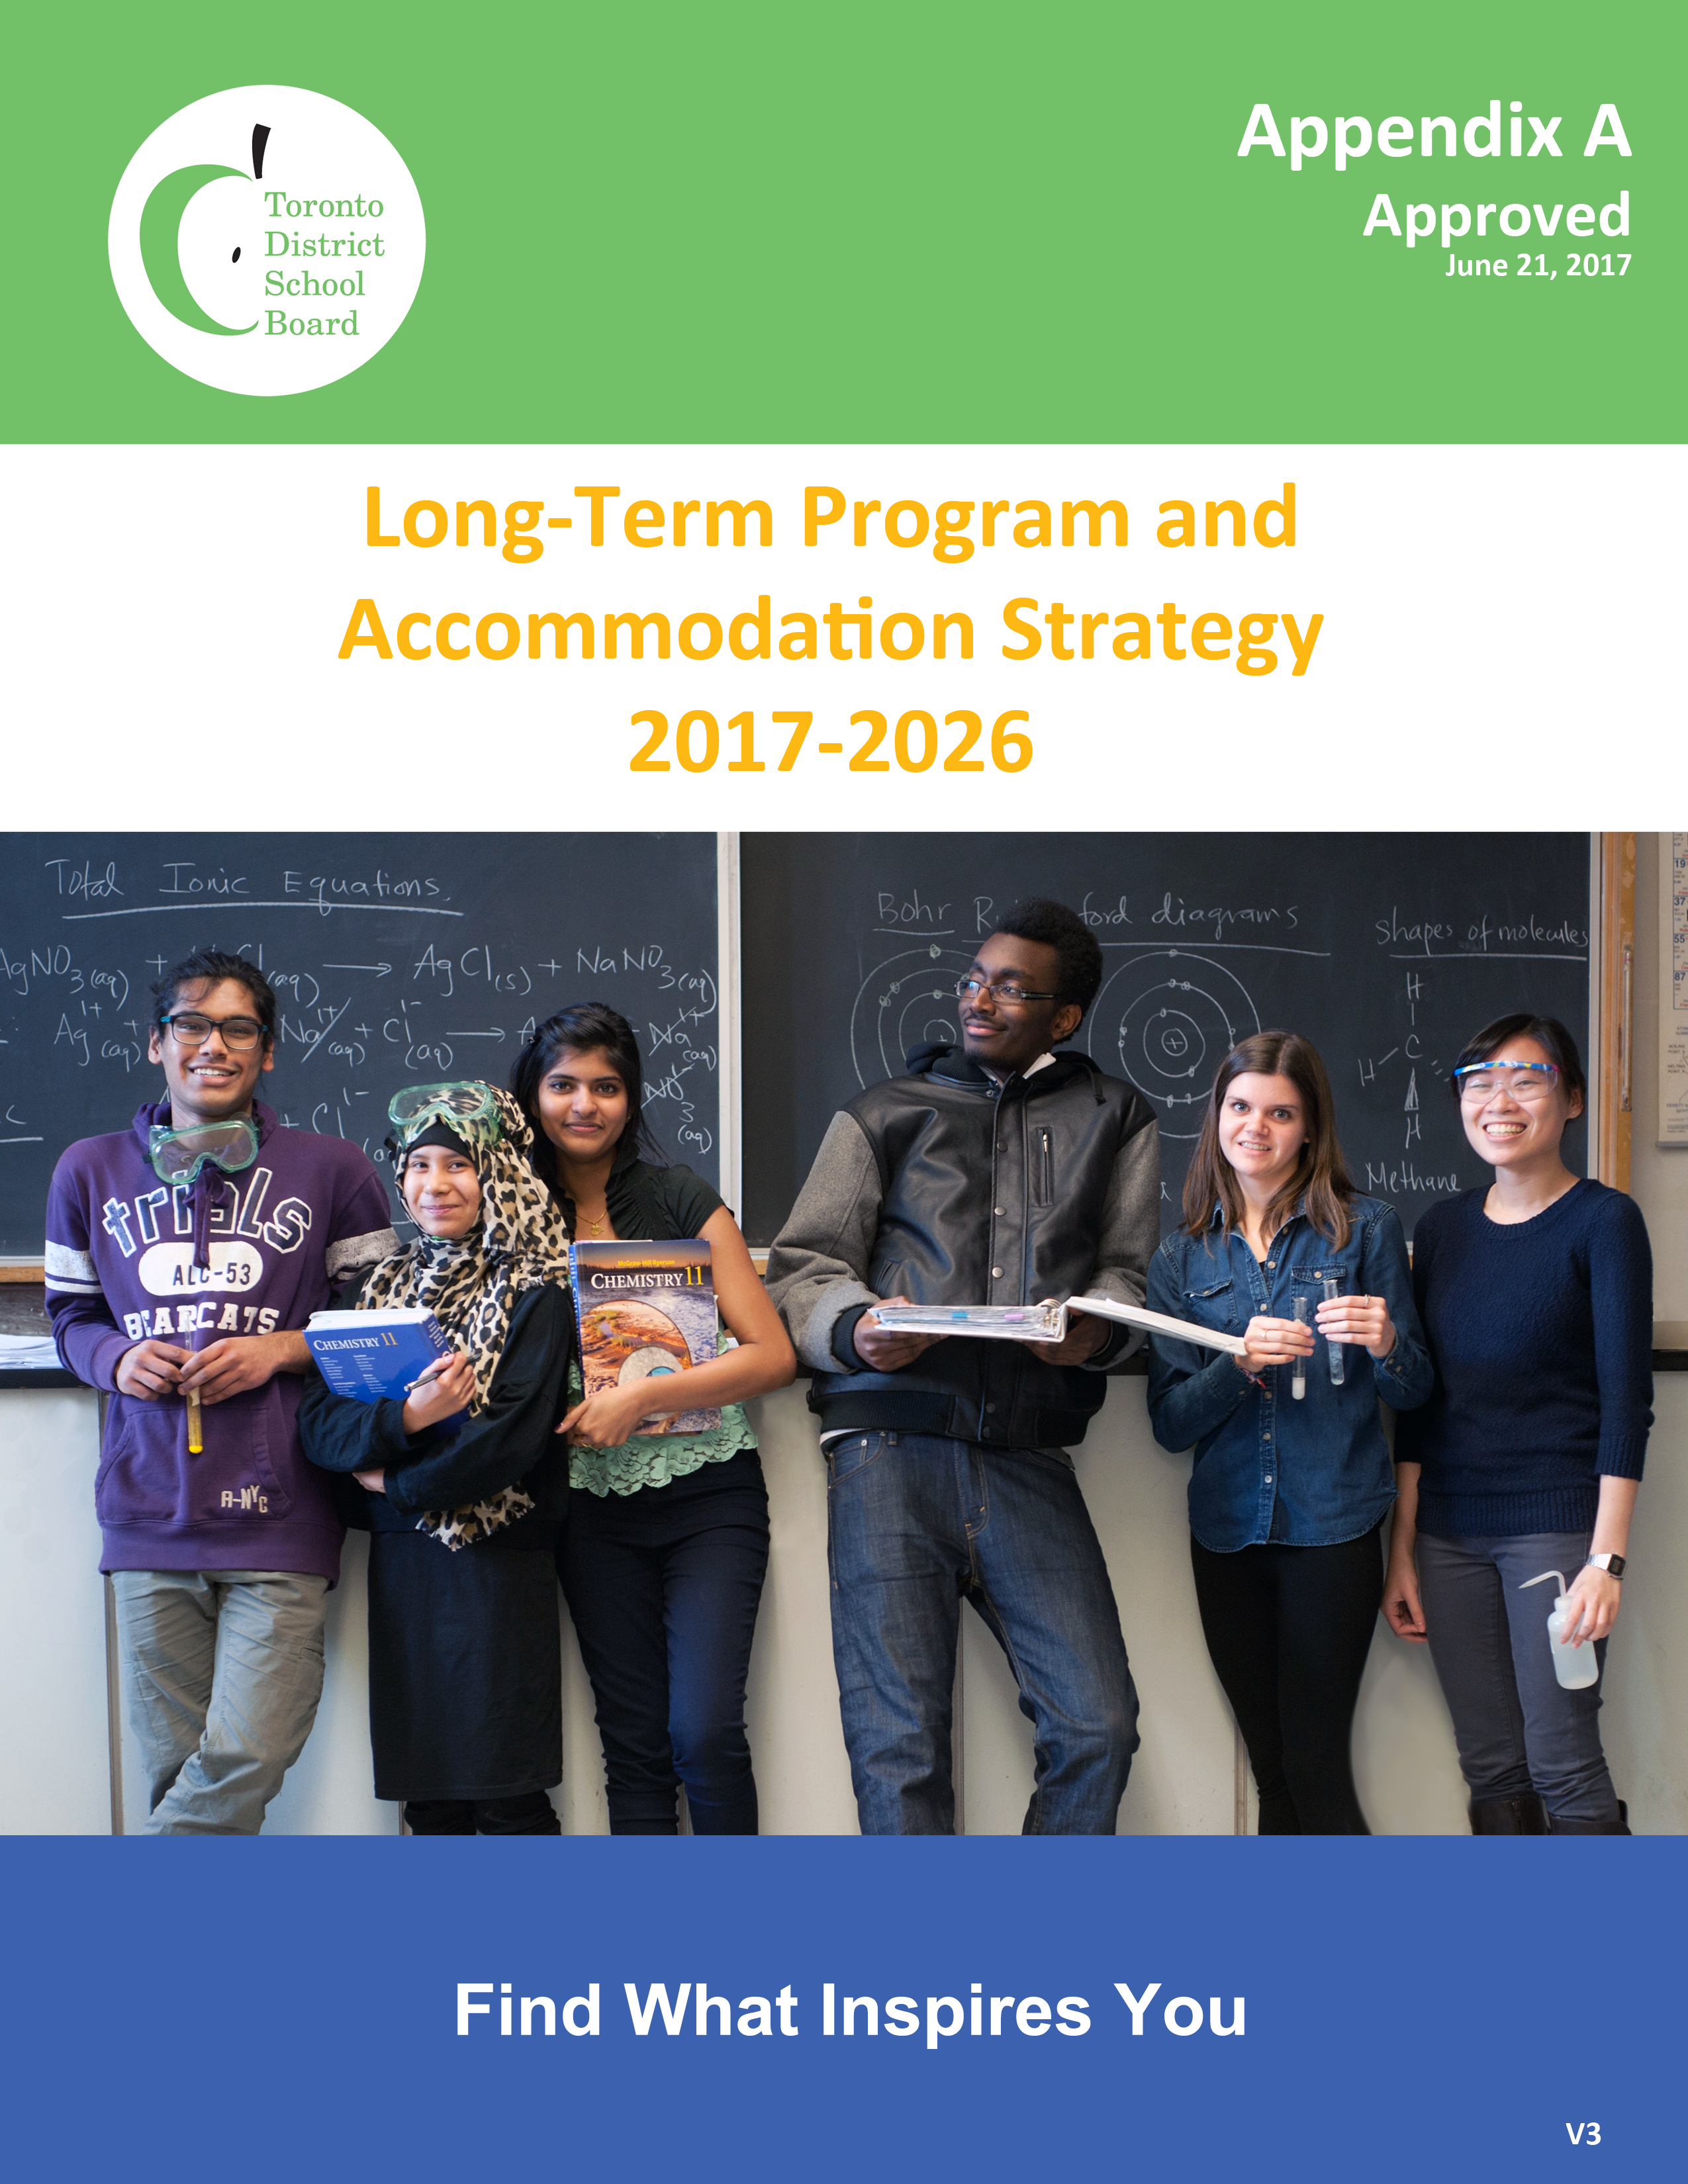 Long-Term Program and Accommodation Strategy 2017-2026